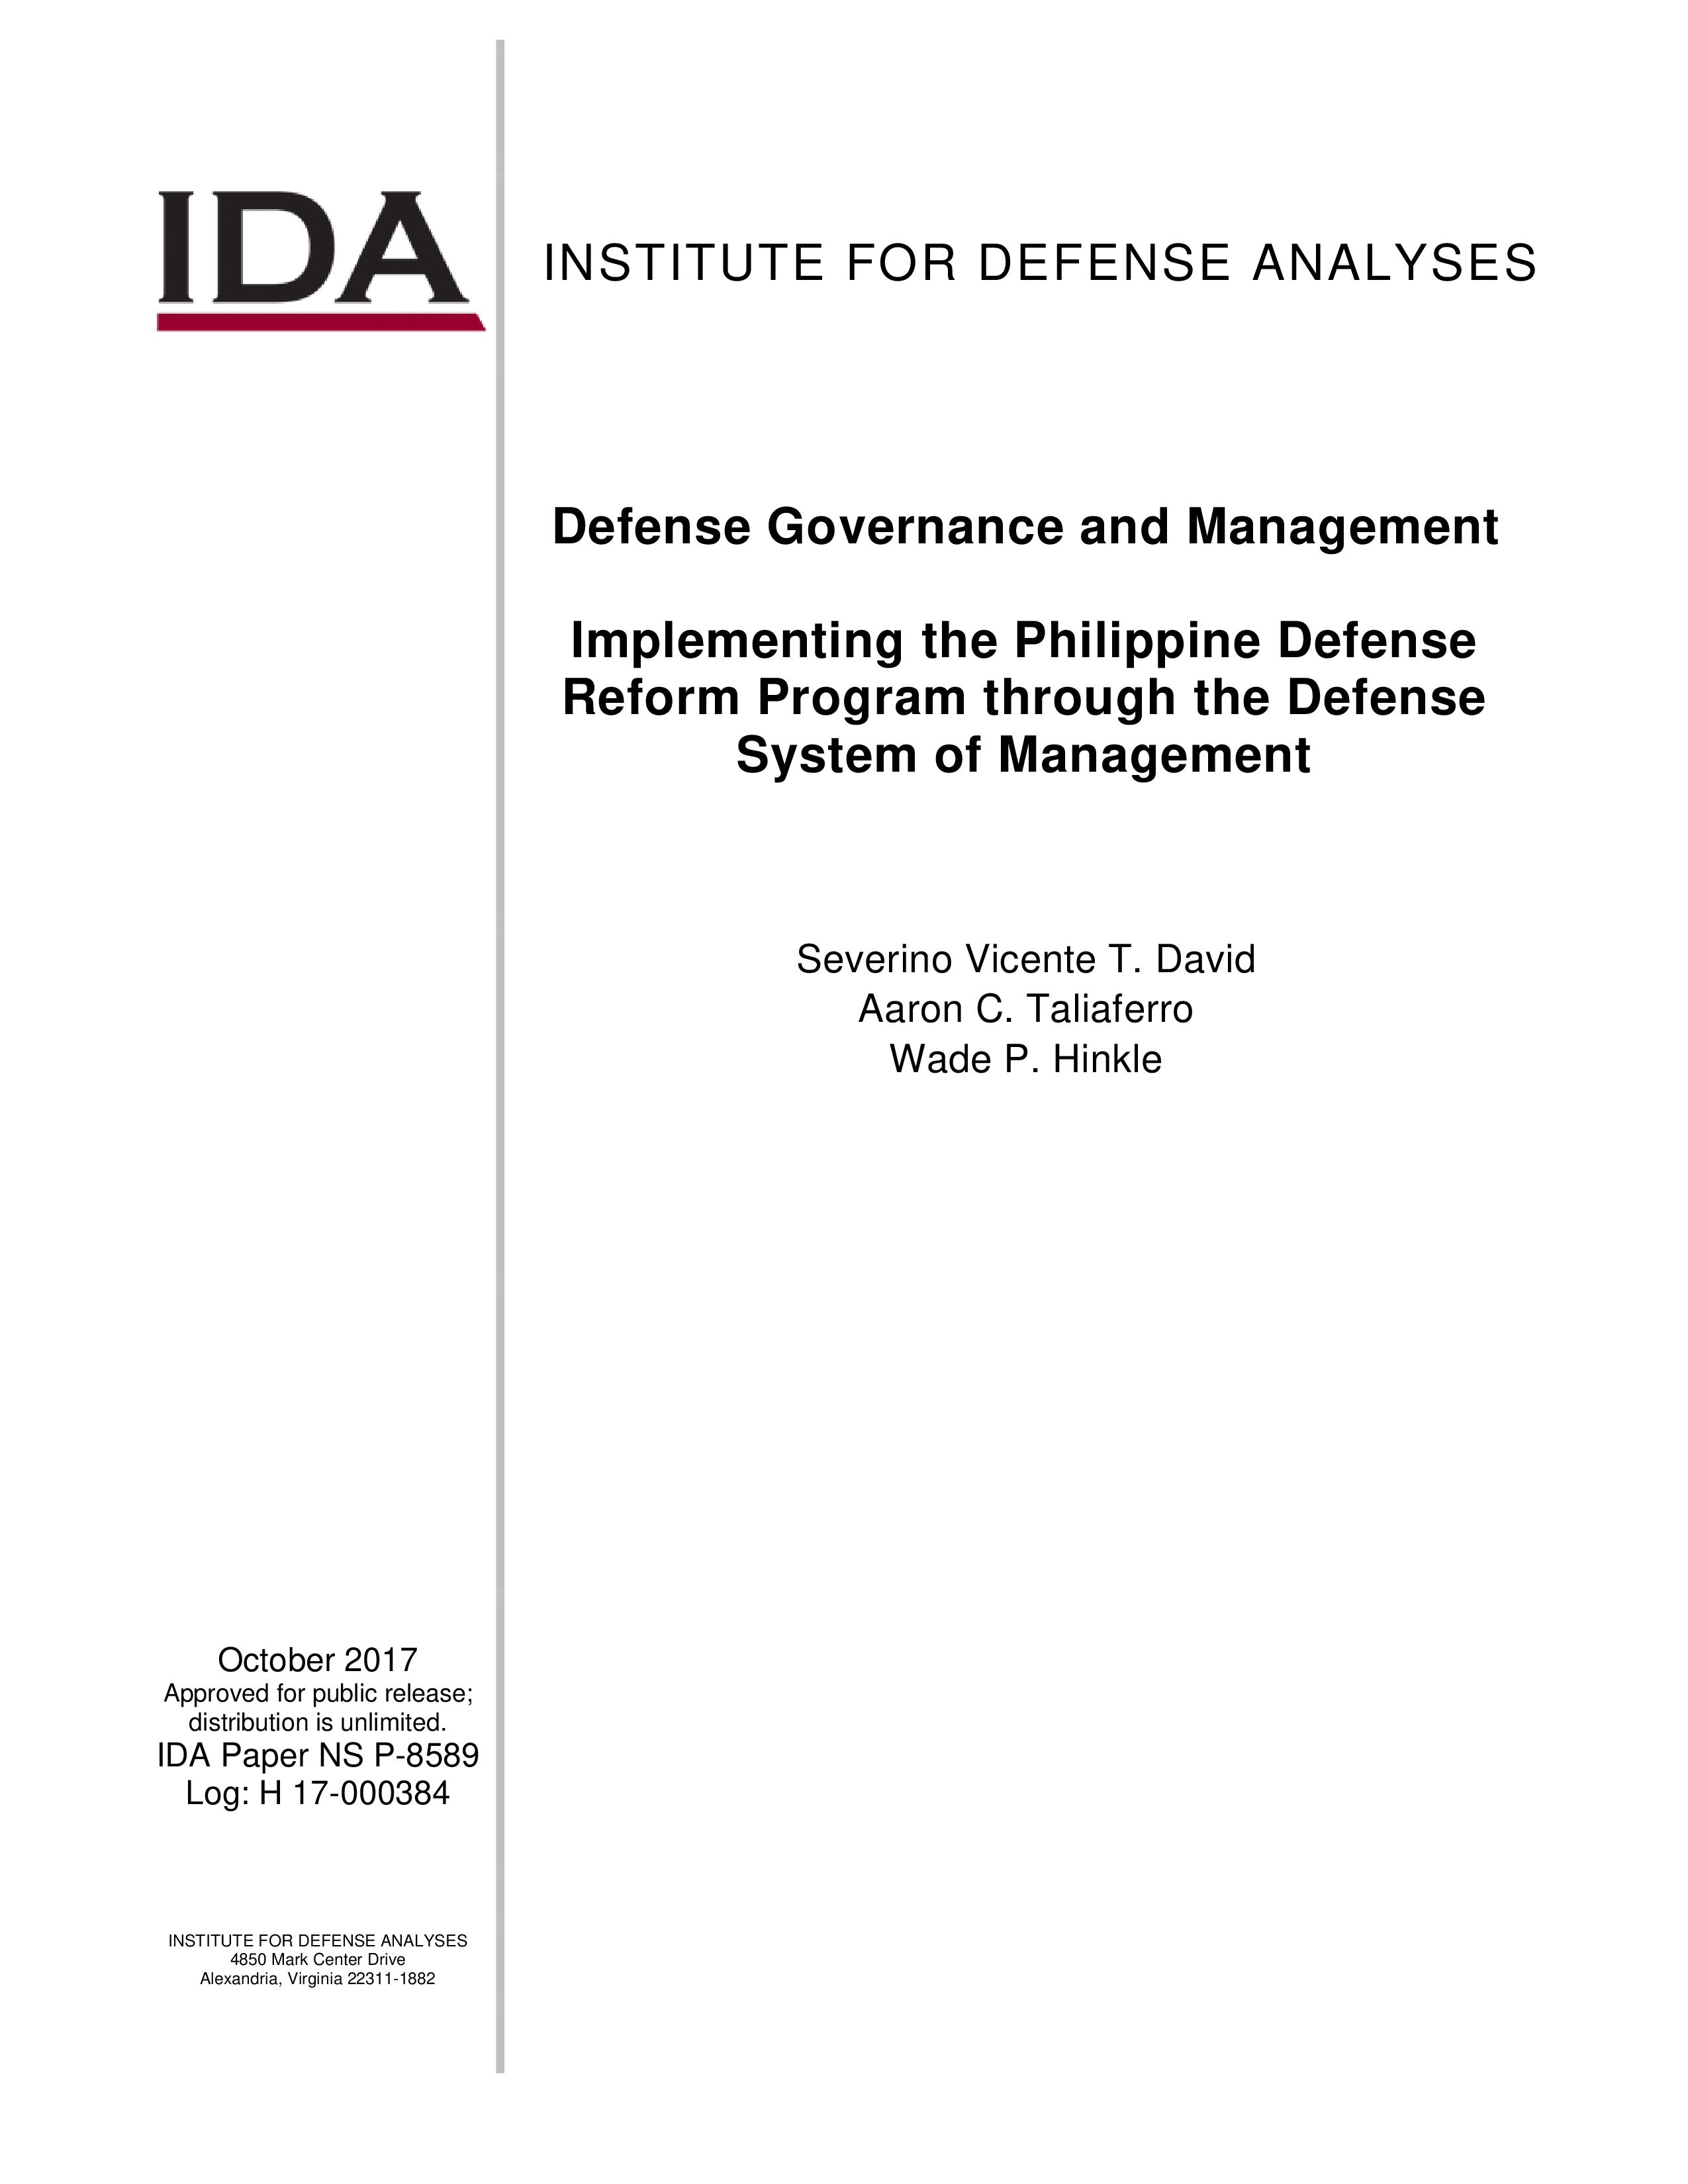 Defense Governance and Management – Implementing the Philippine Defense Reform Program through the Defense System of Management